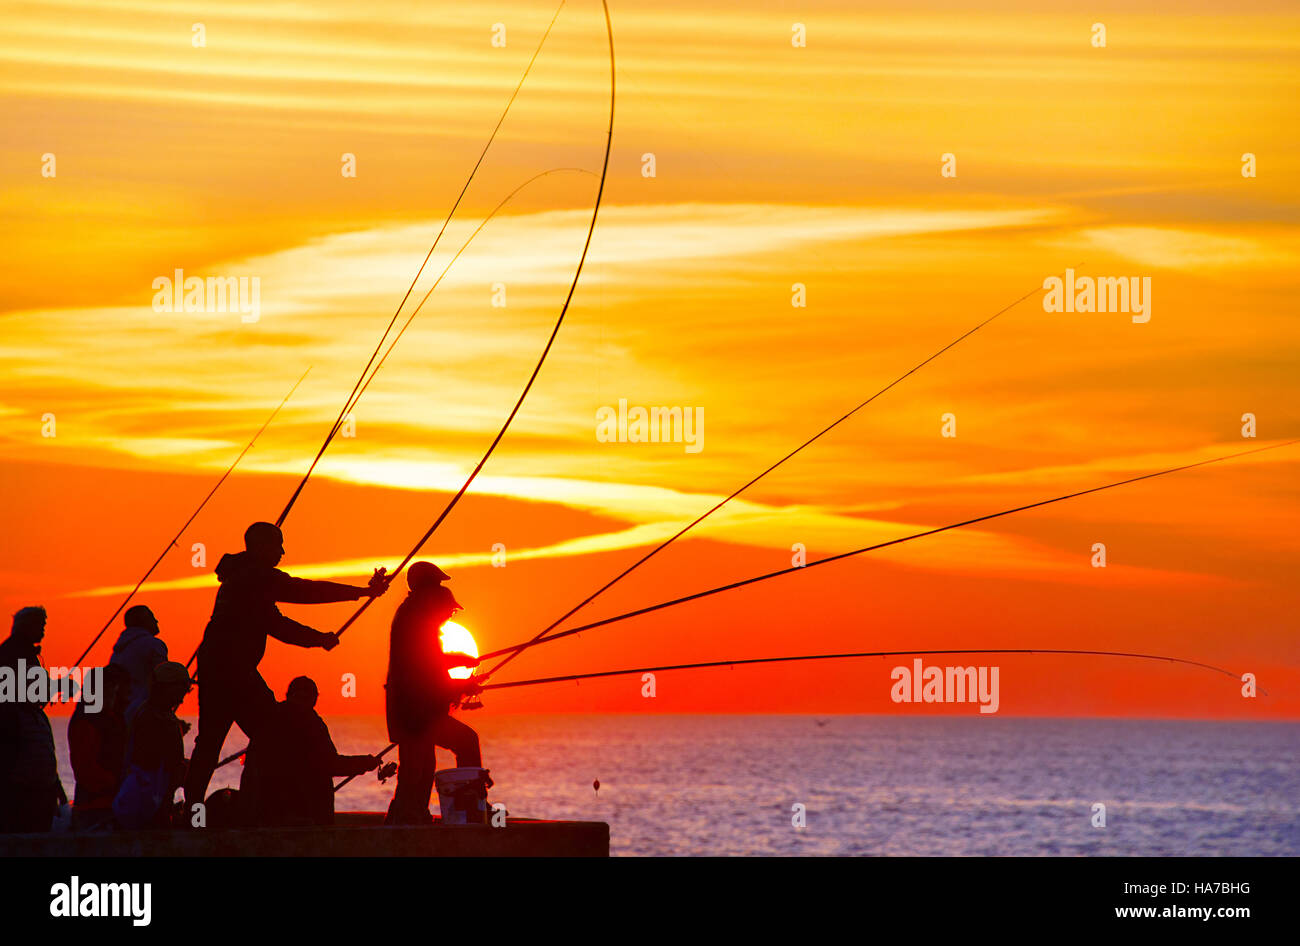 Group of fisherman on a pier at sunset. Porto, Portugal Stock Photo